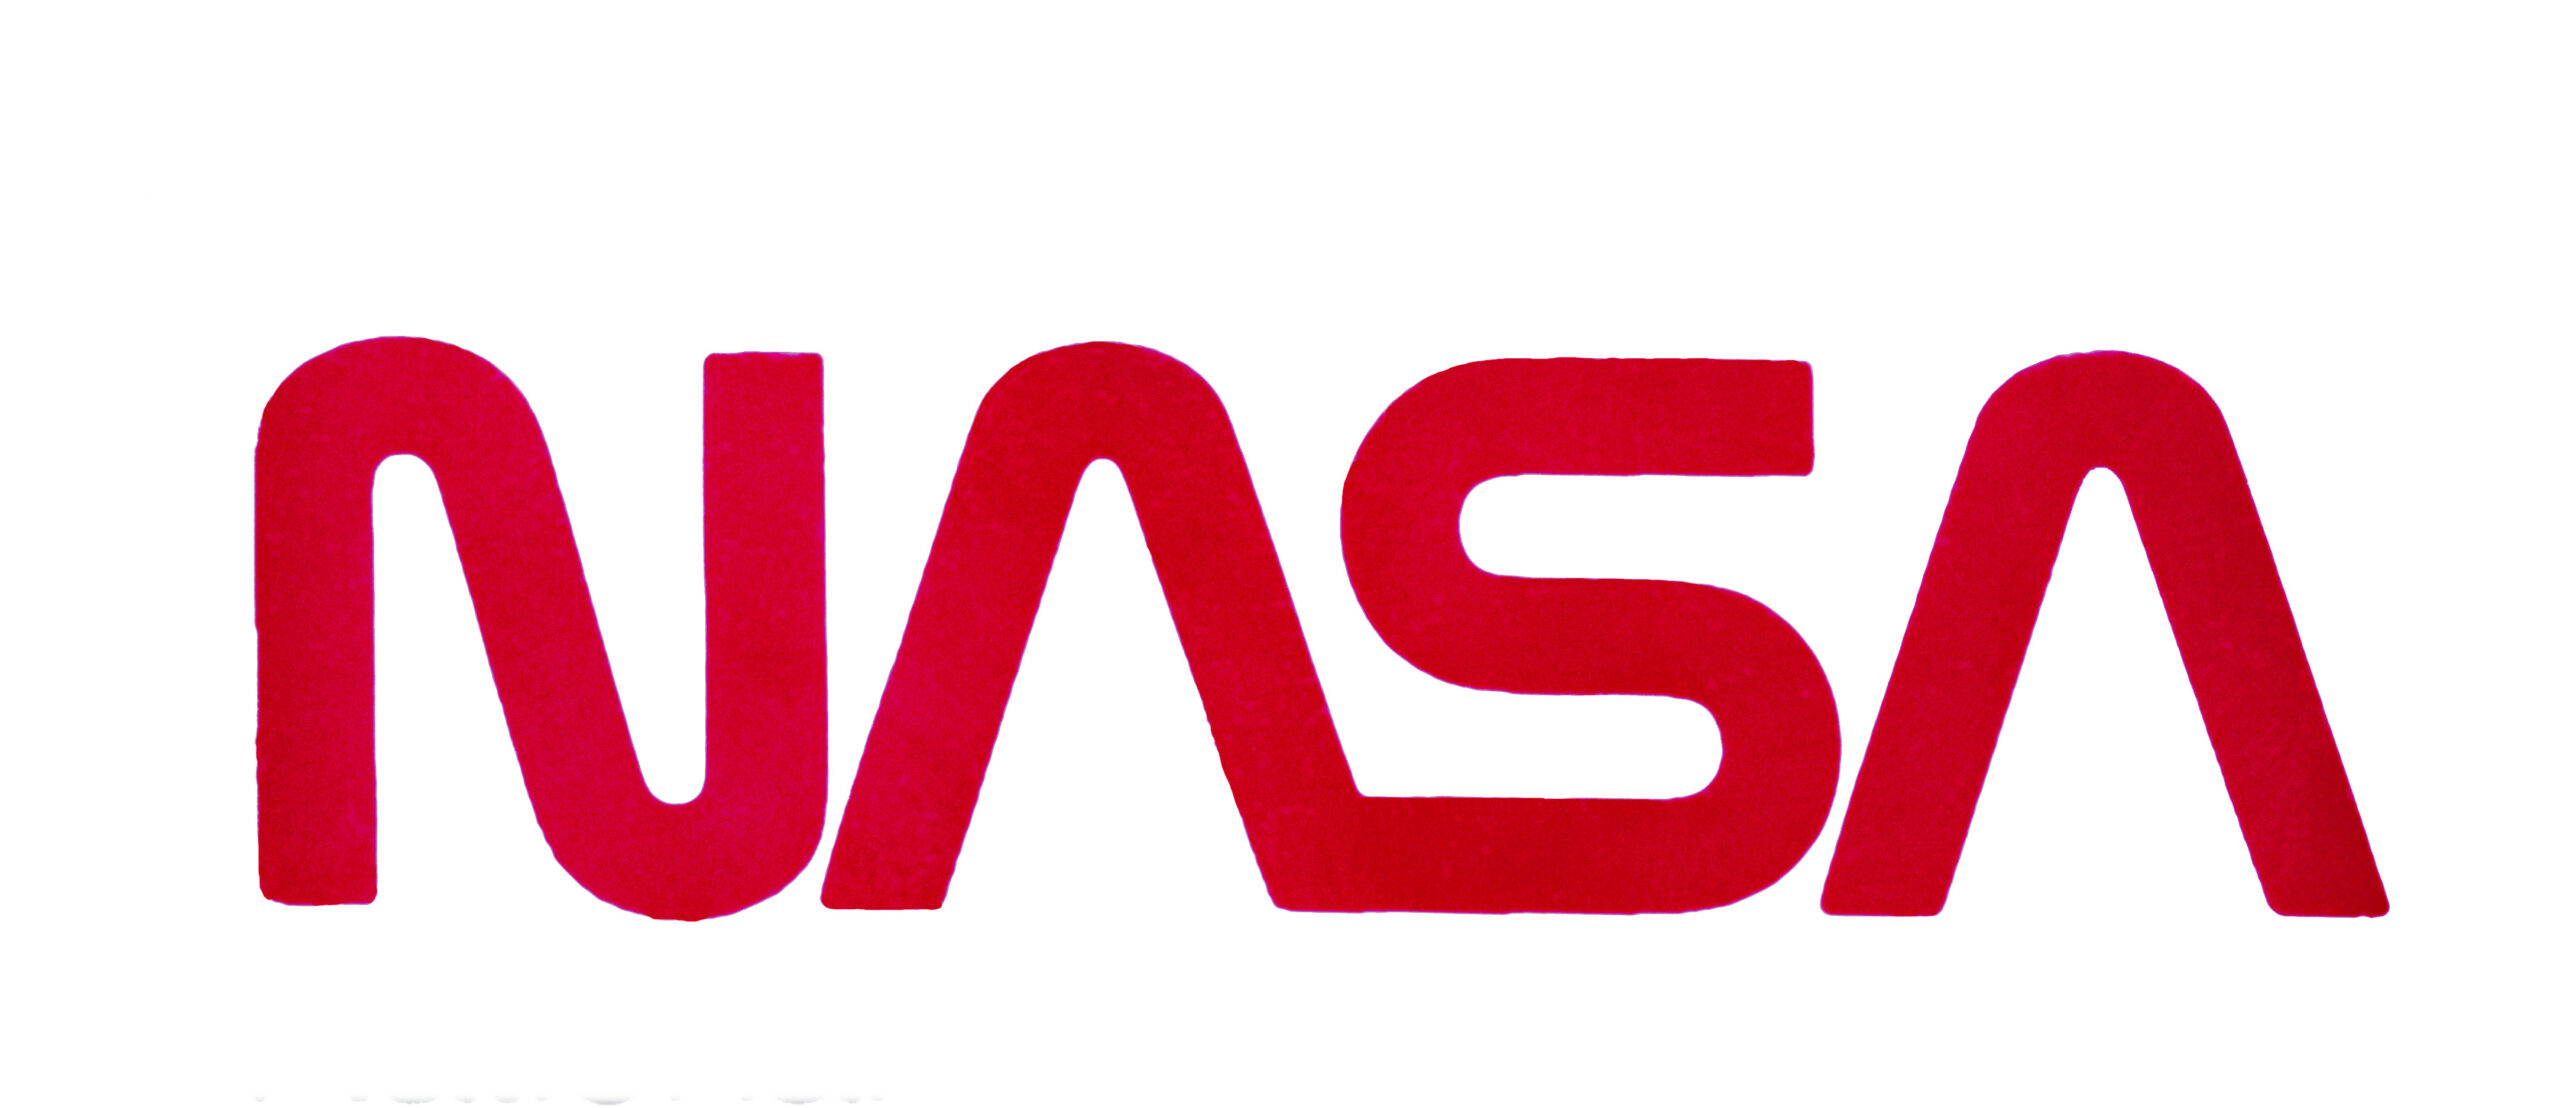 The Nasa logo showing just the name in red